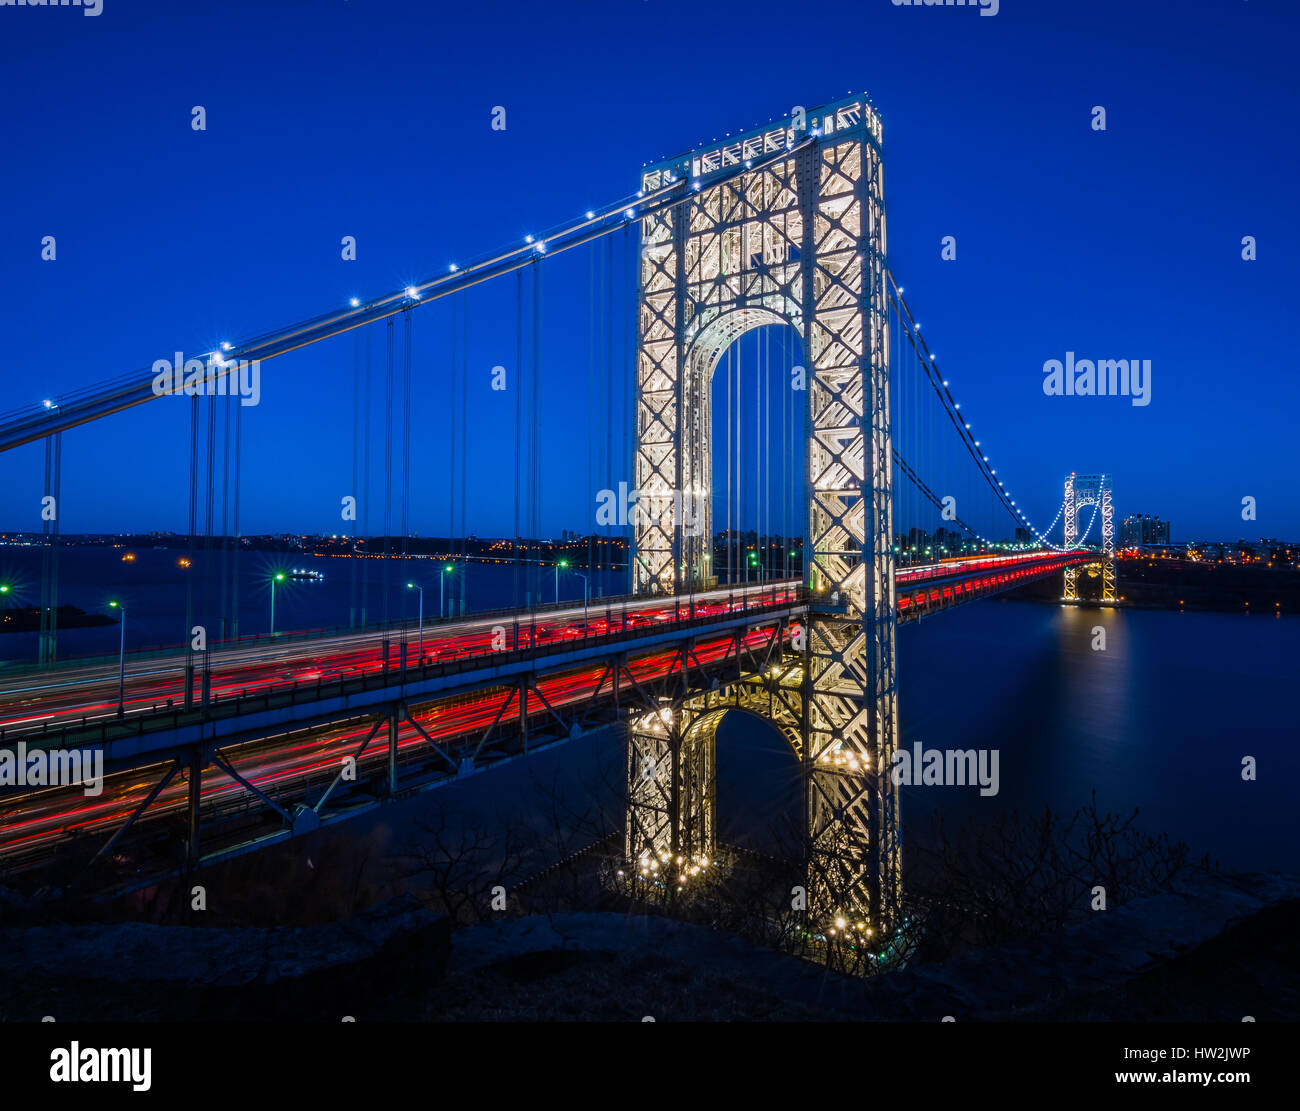 George Washington Bridge - Stock Image